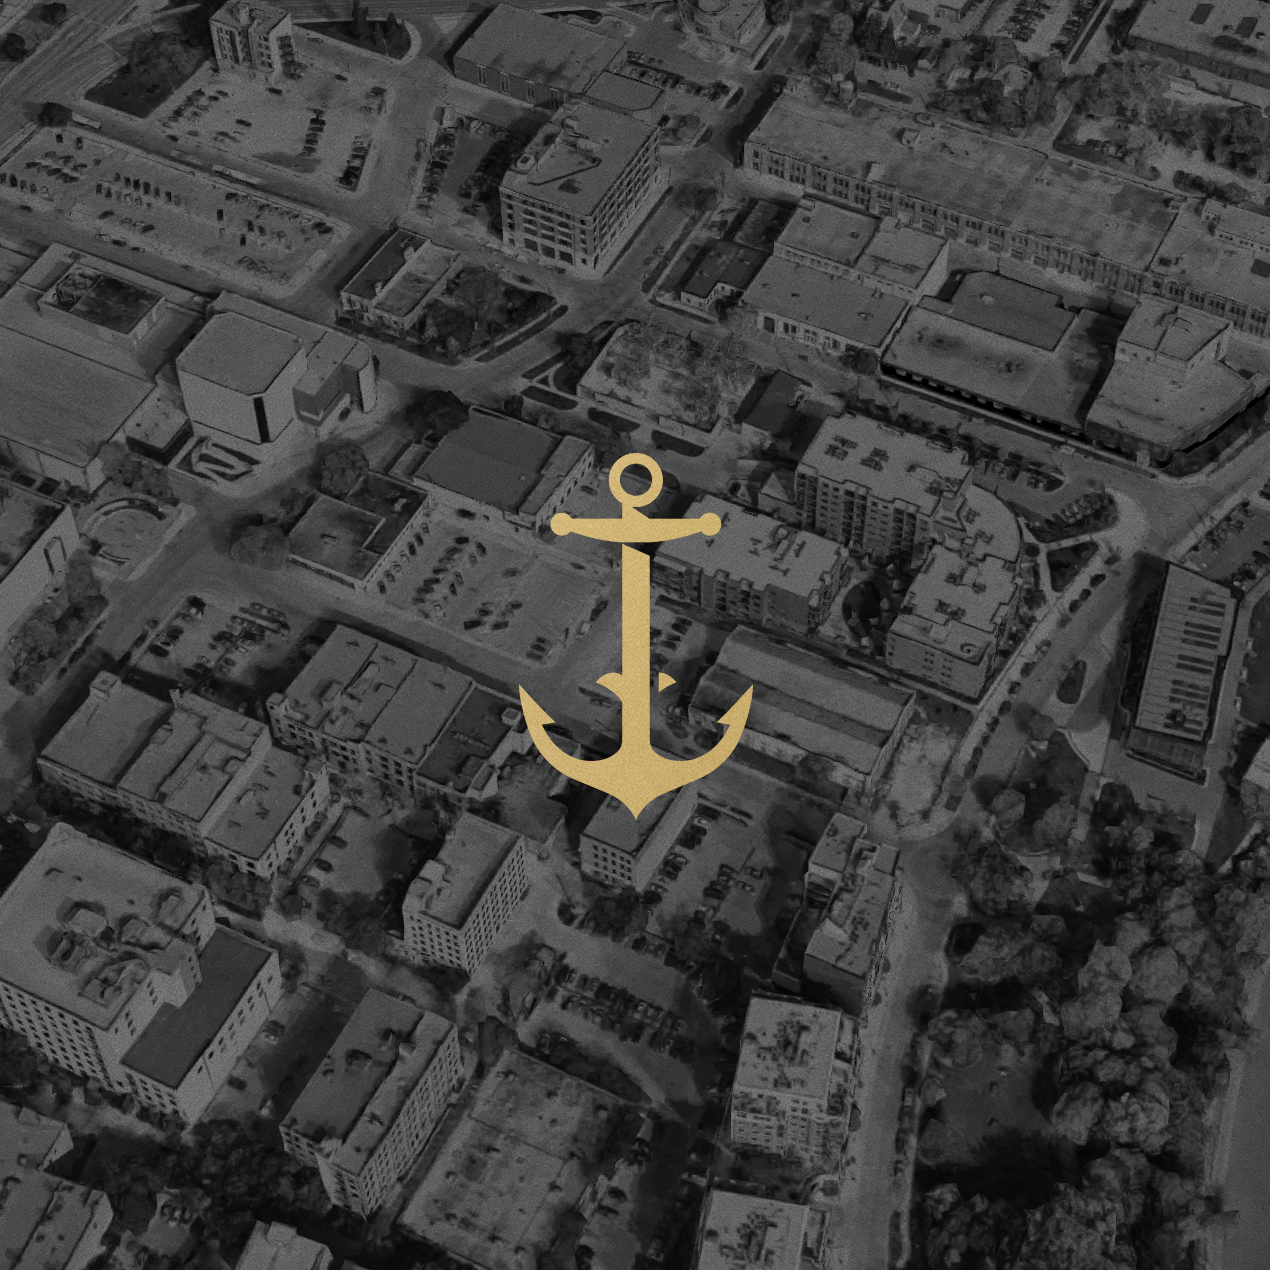 Dropping Anchor Square Image.png